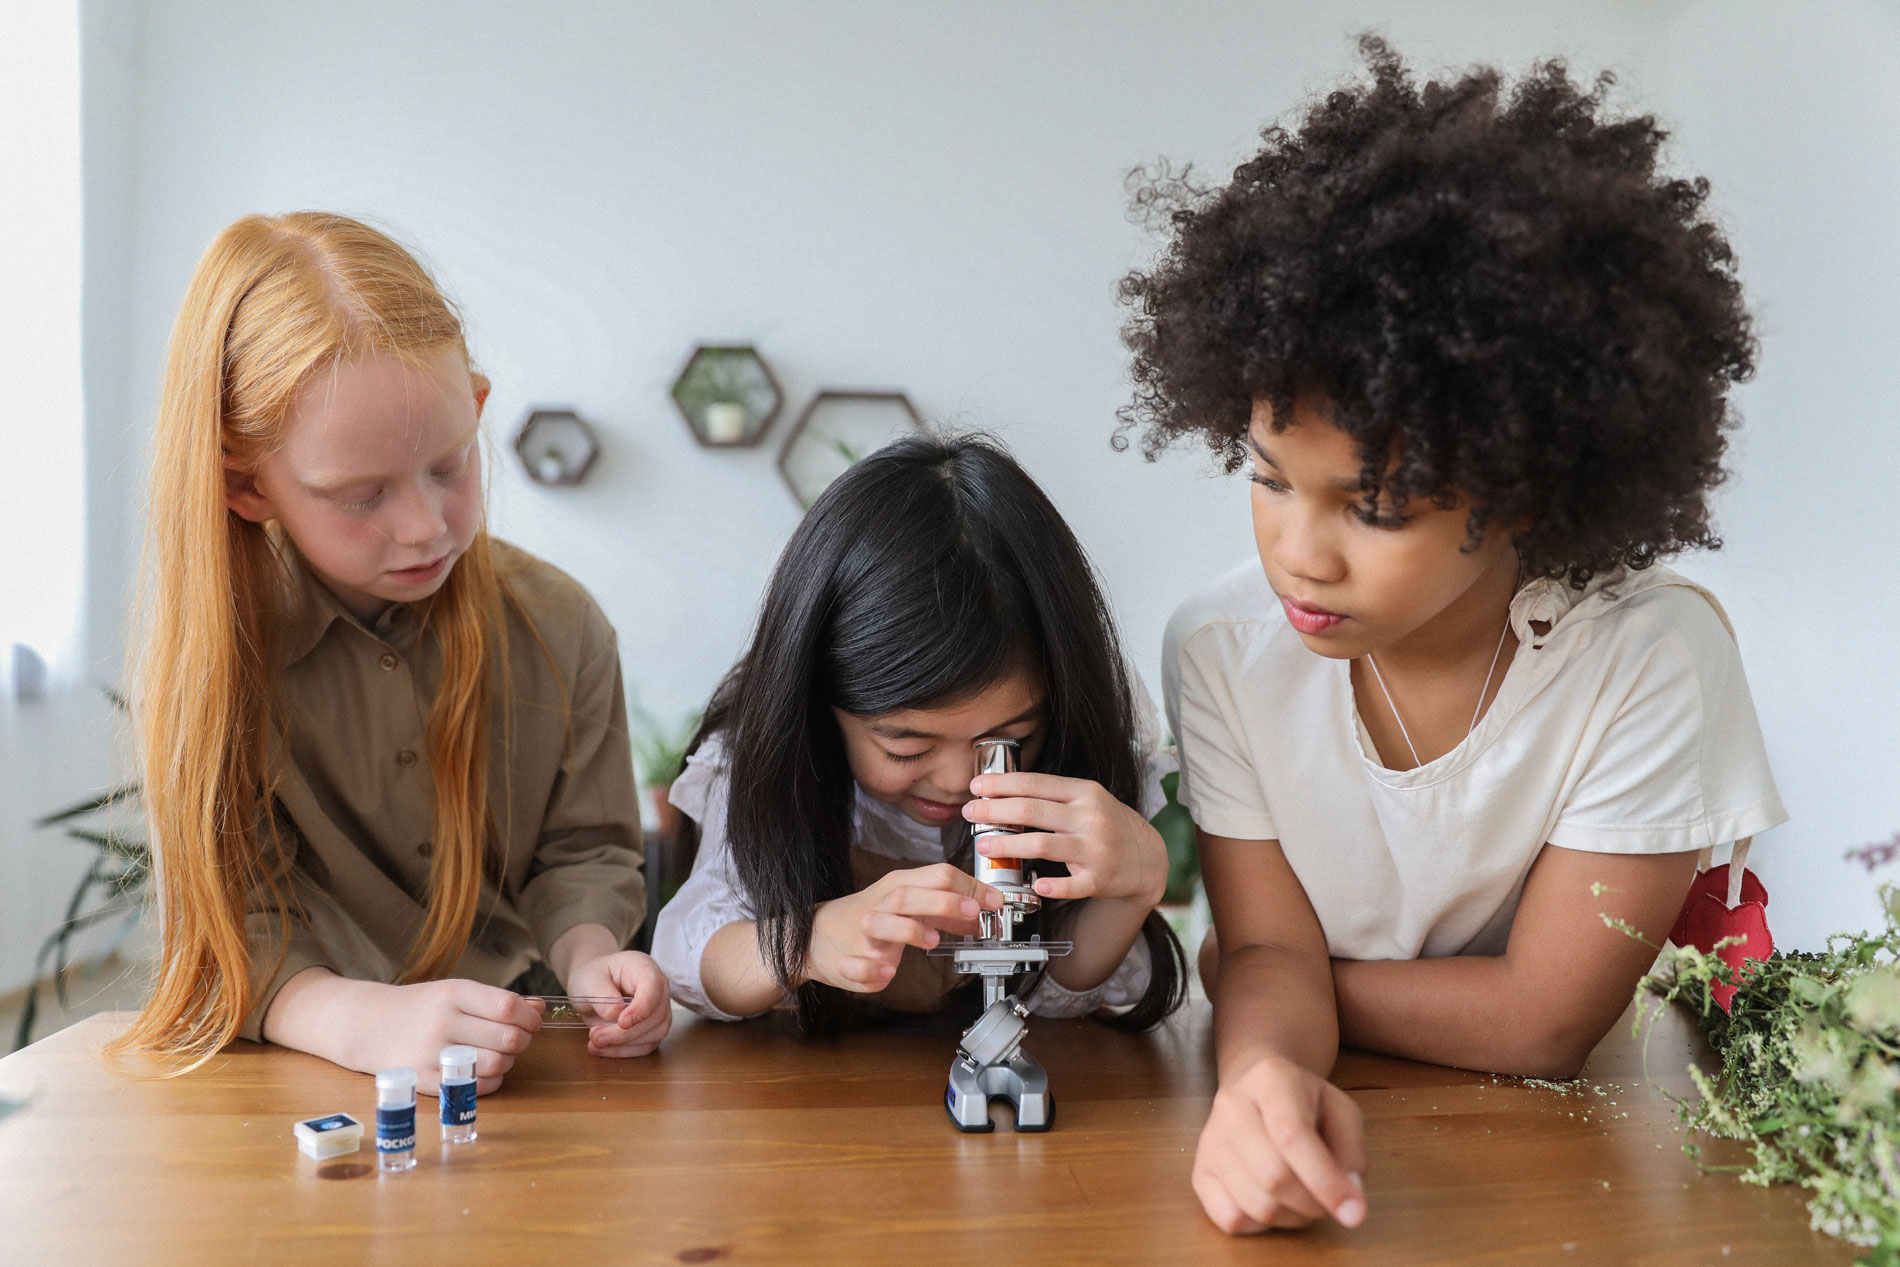 A child looking through a microscope with two children looking on